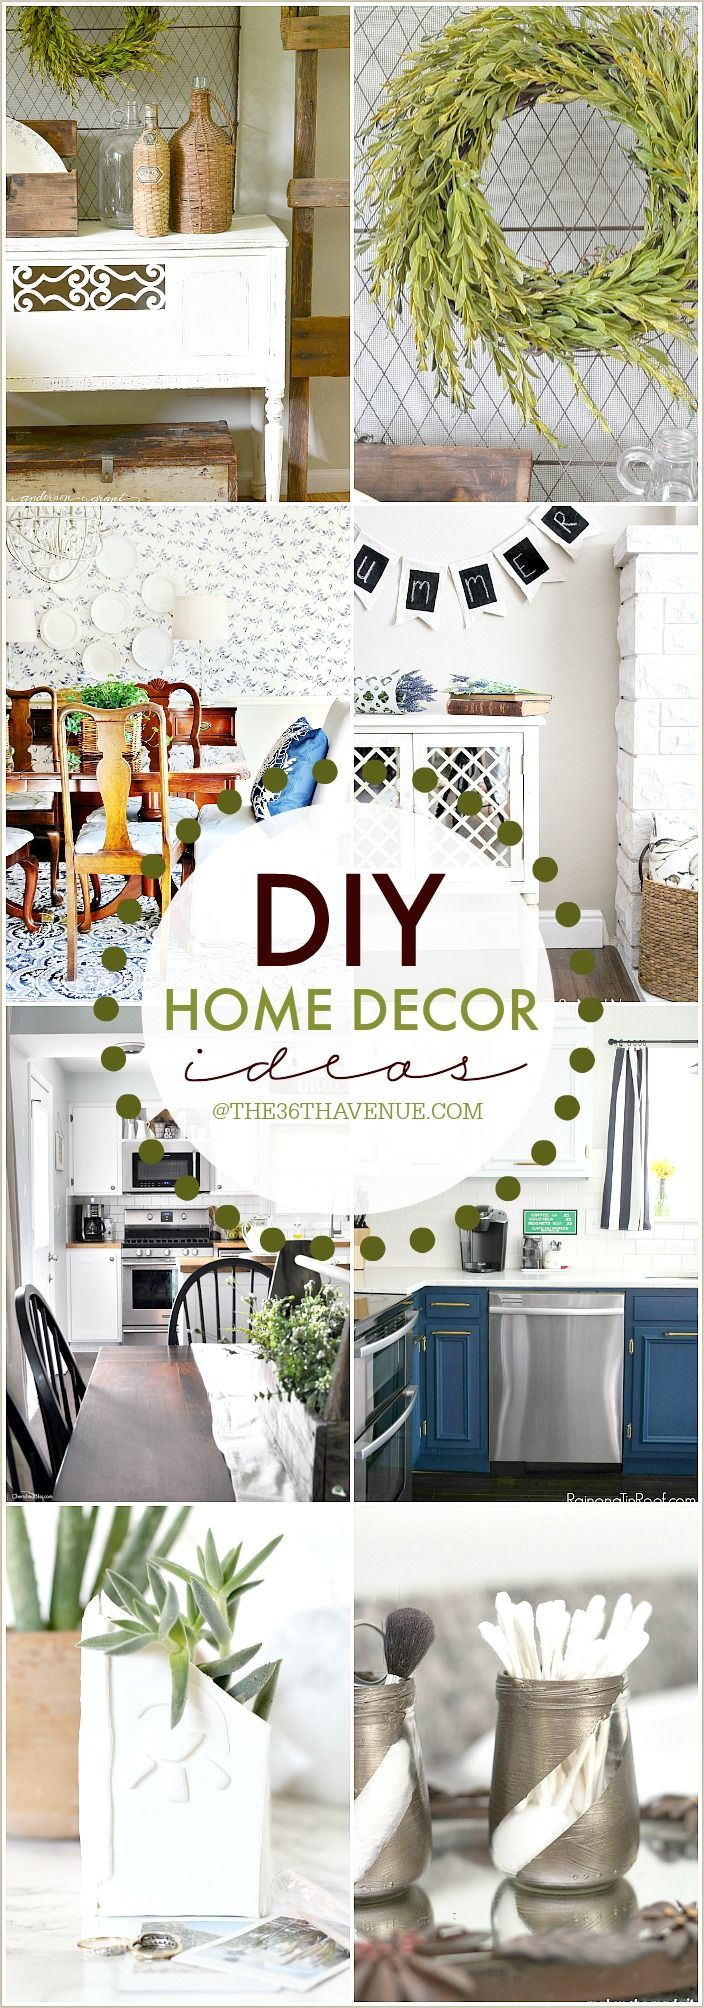 338 Best Images About Home Decor On Pinterest Diy Home